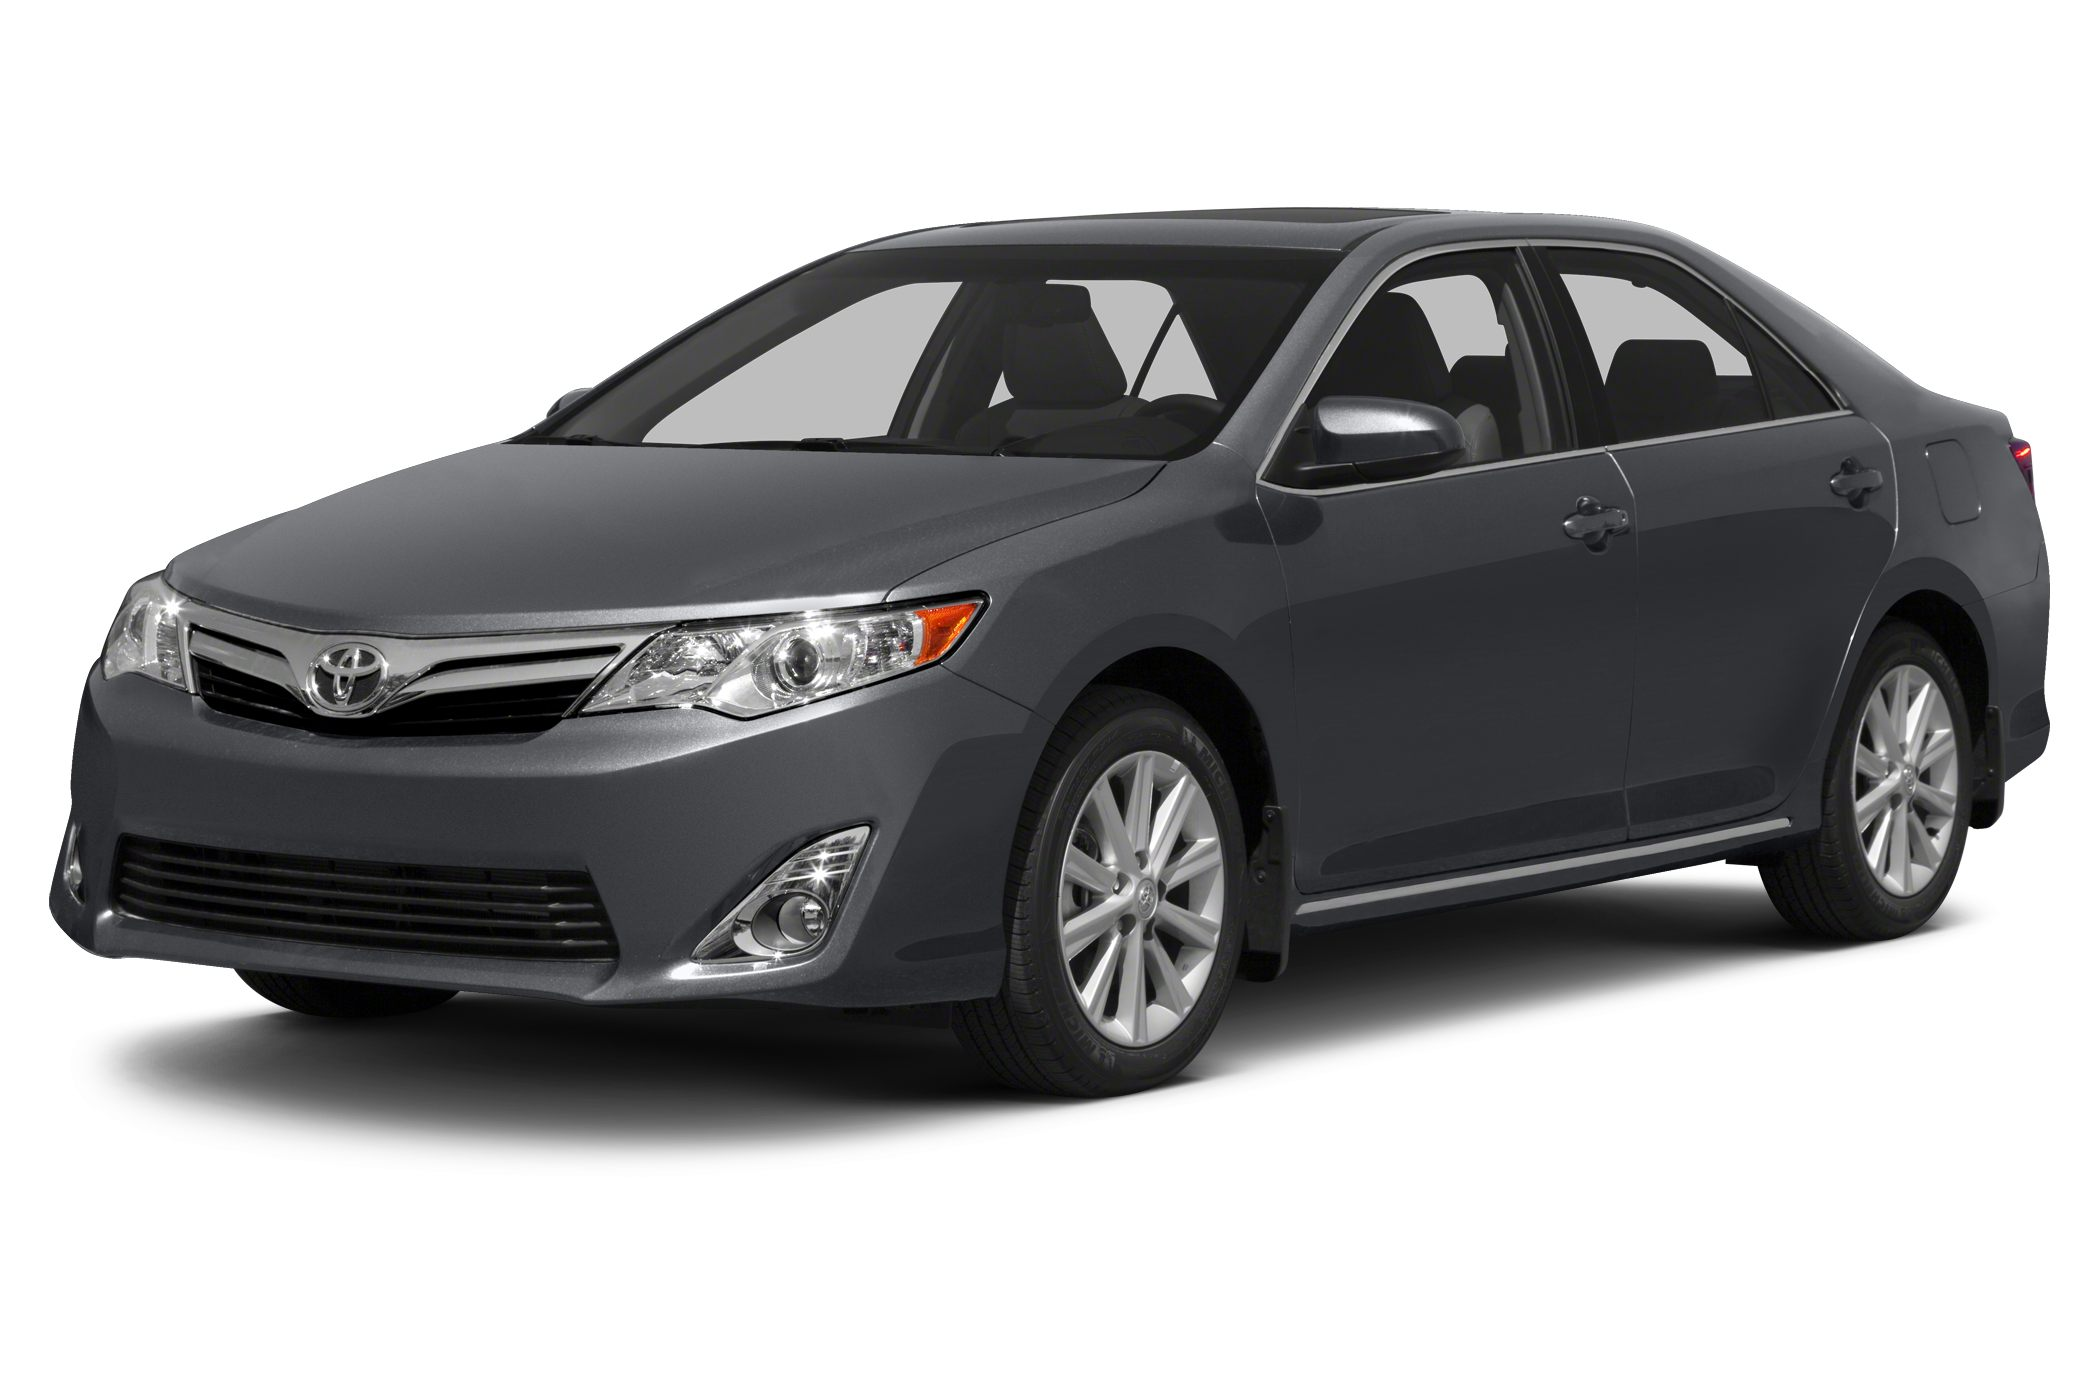 2014 Toyota Camry  Step into the 2014 Toyota Camry Feature-packed and decked out This 4 door 5